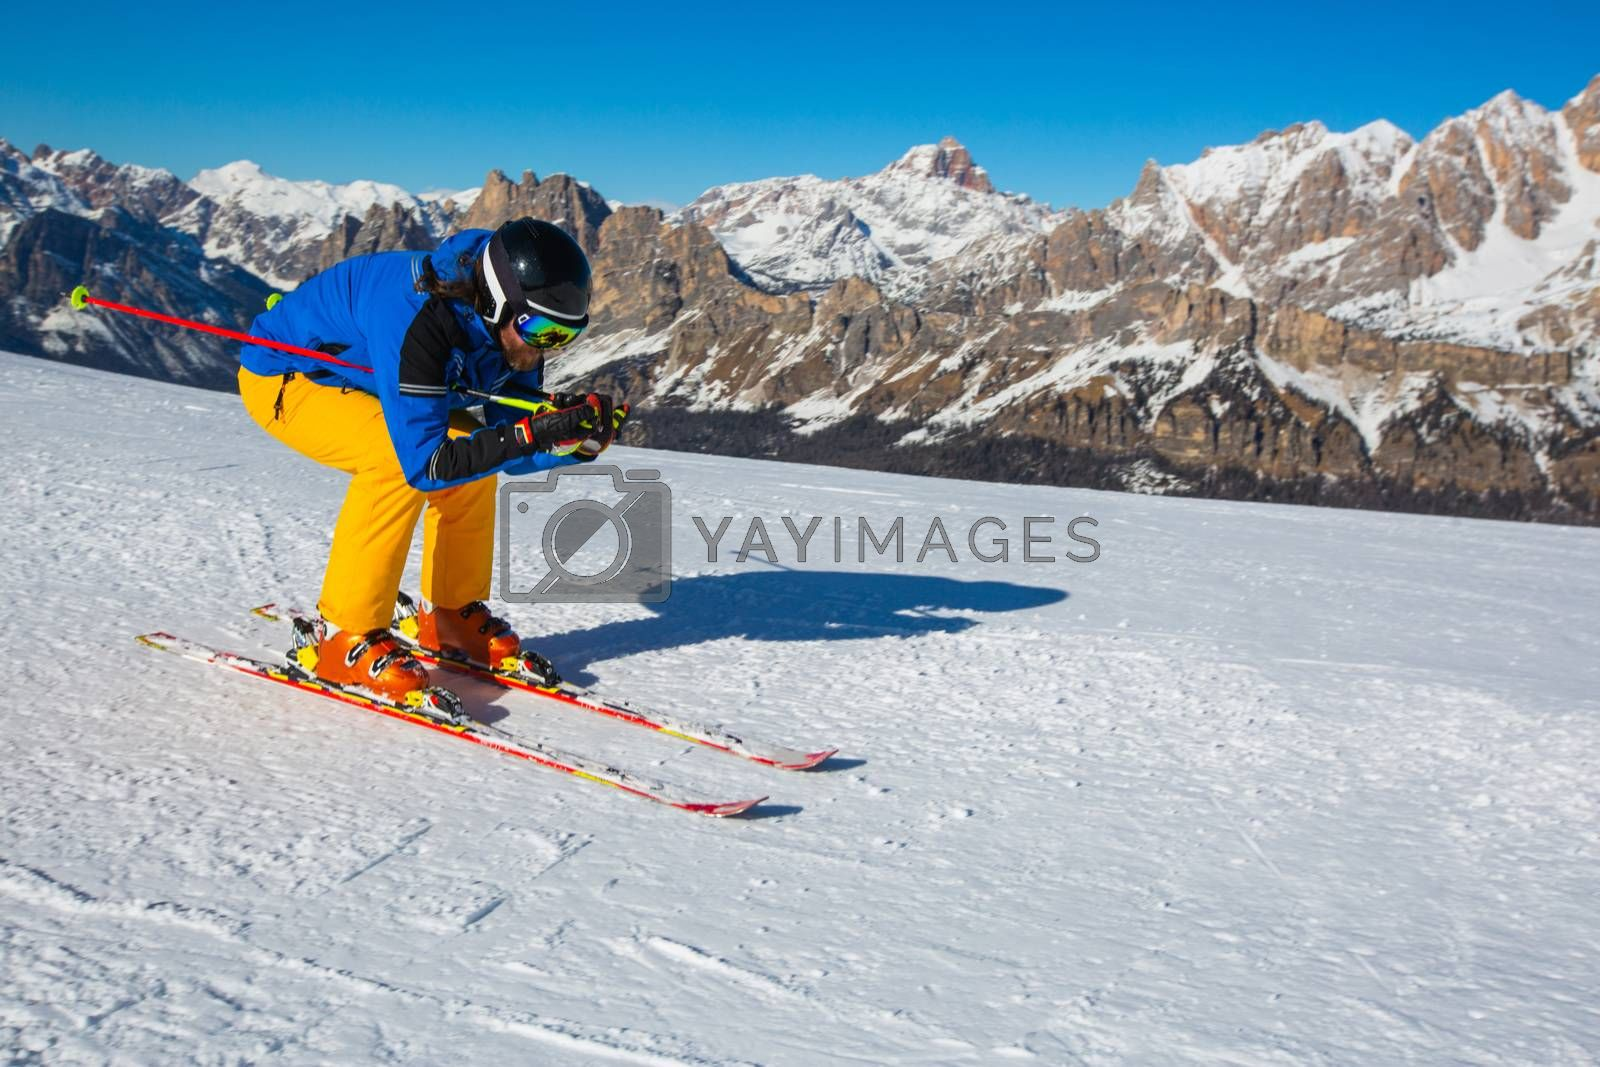 Male skier in blue and yellow clothes on slope with mountains in the background at Cortina d'Ampezzo Faloria skiing resort area Dolomiti Italy